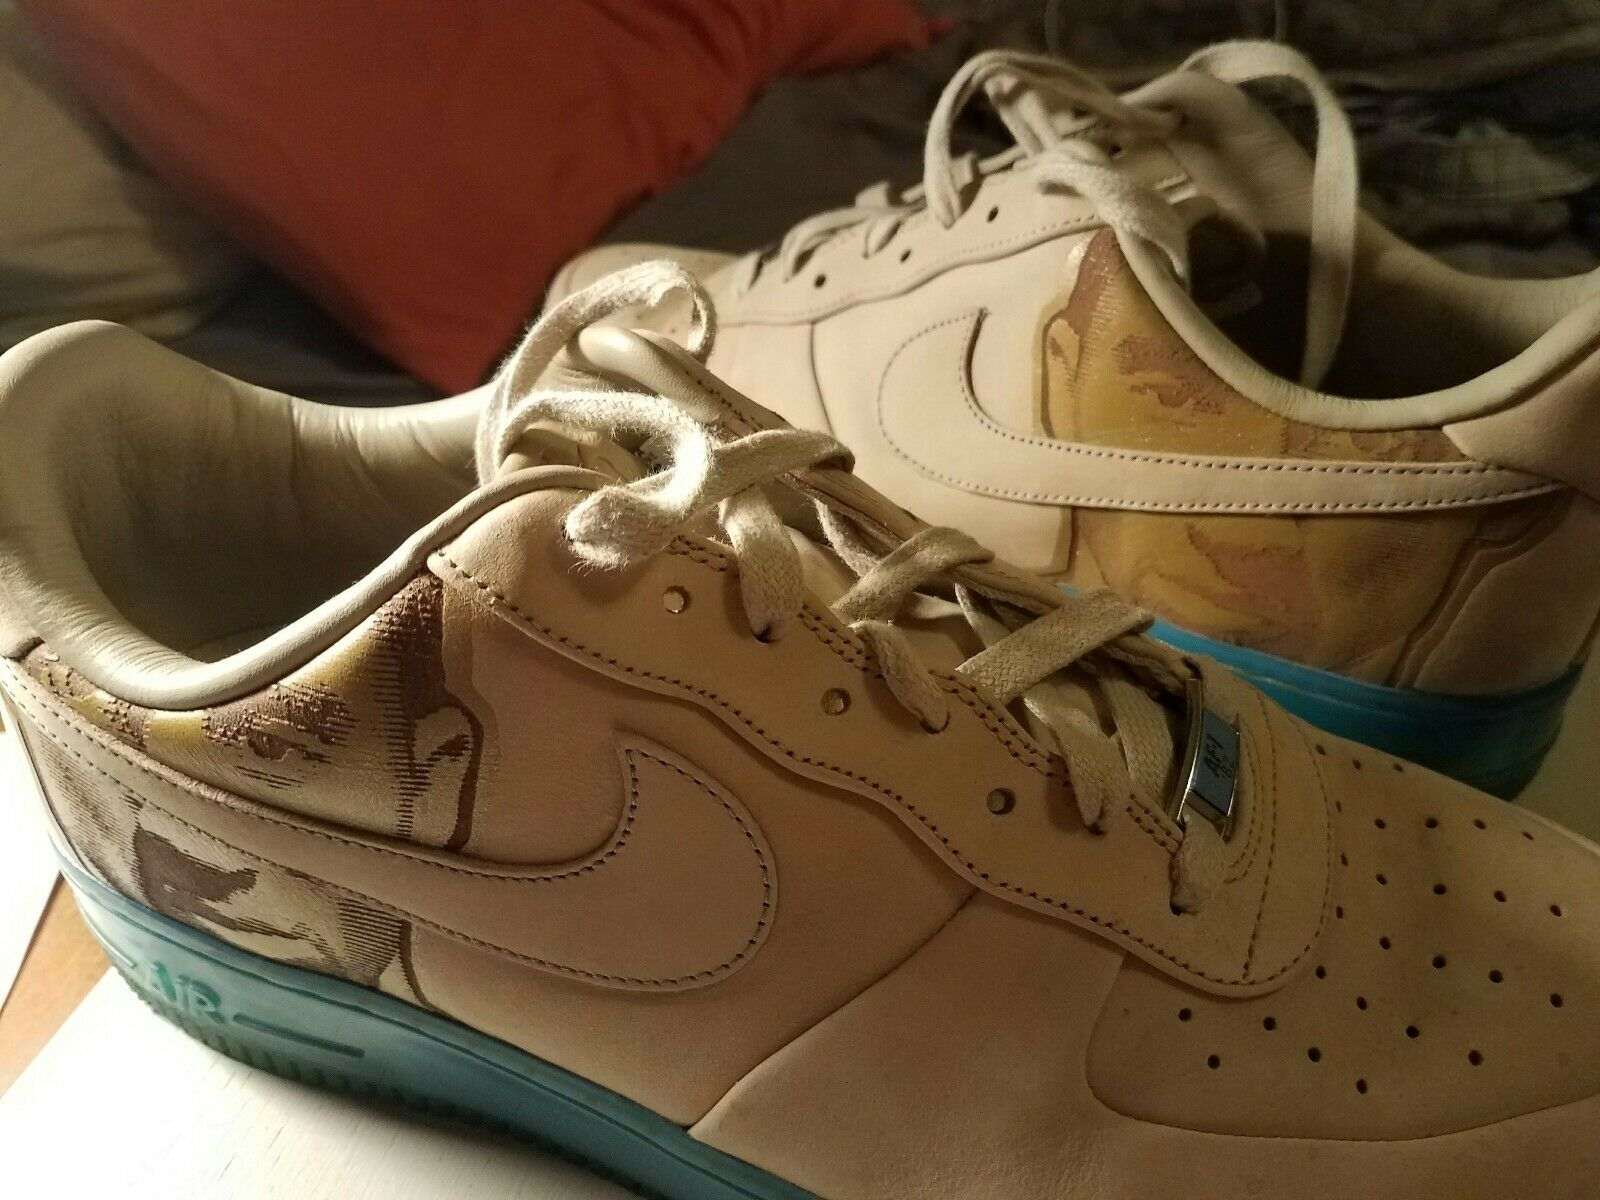 Sneaker Heads -- Men's Nike Air Force One Low Kobe Bryant Face Size 12 Rare